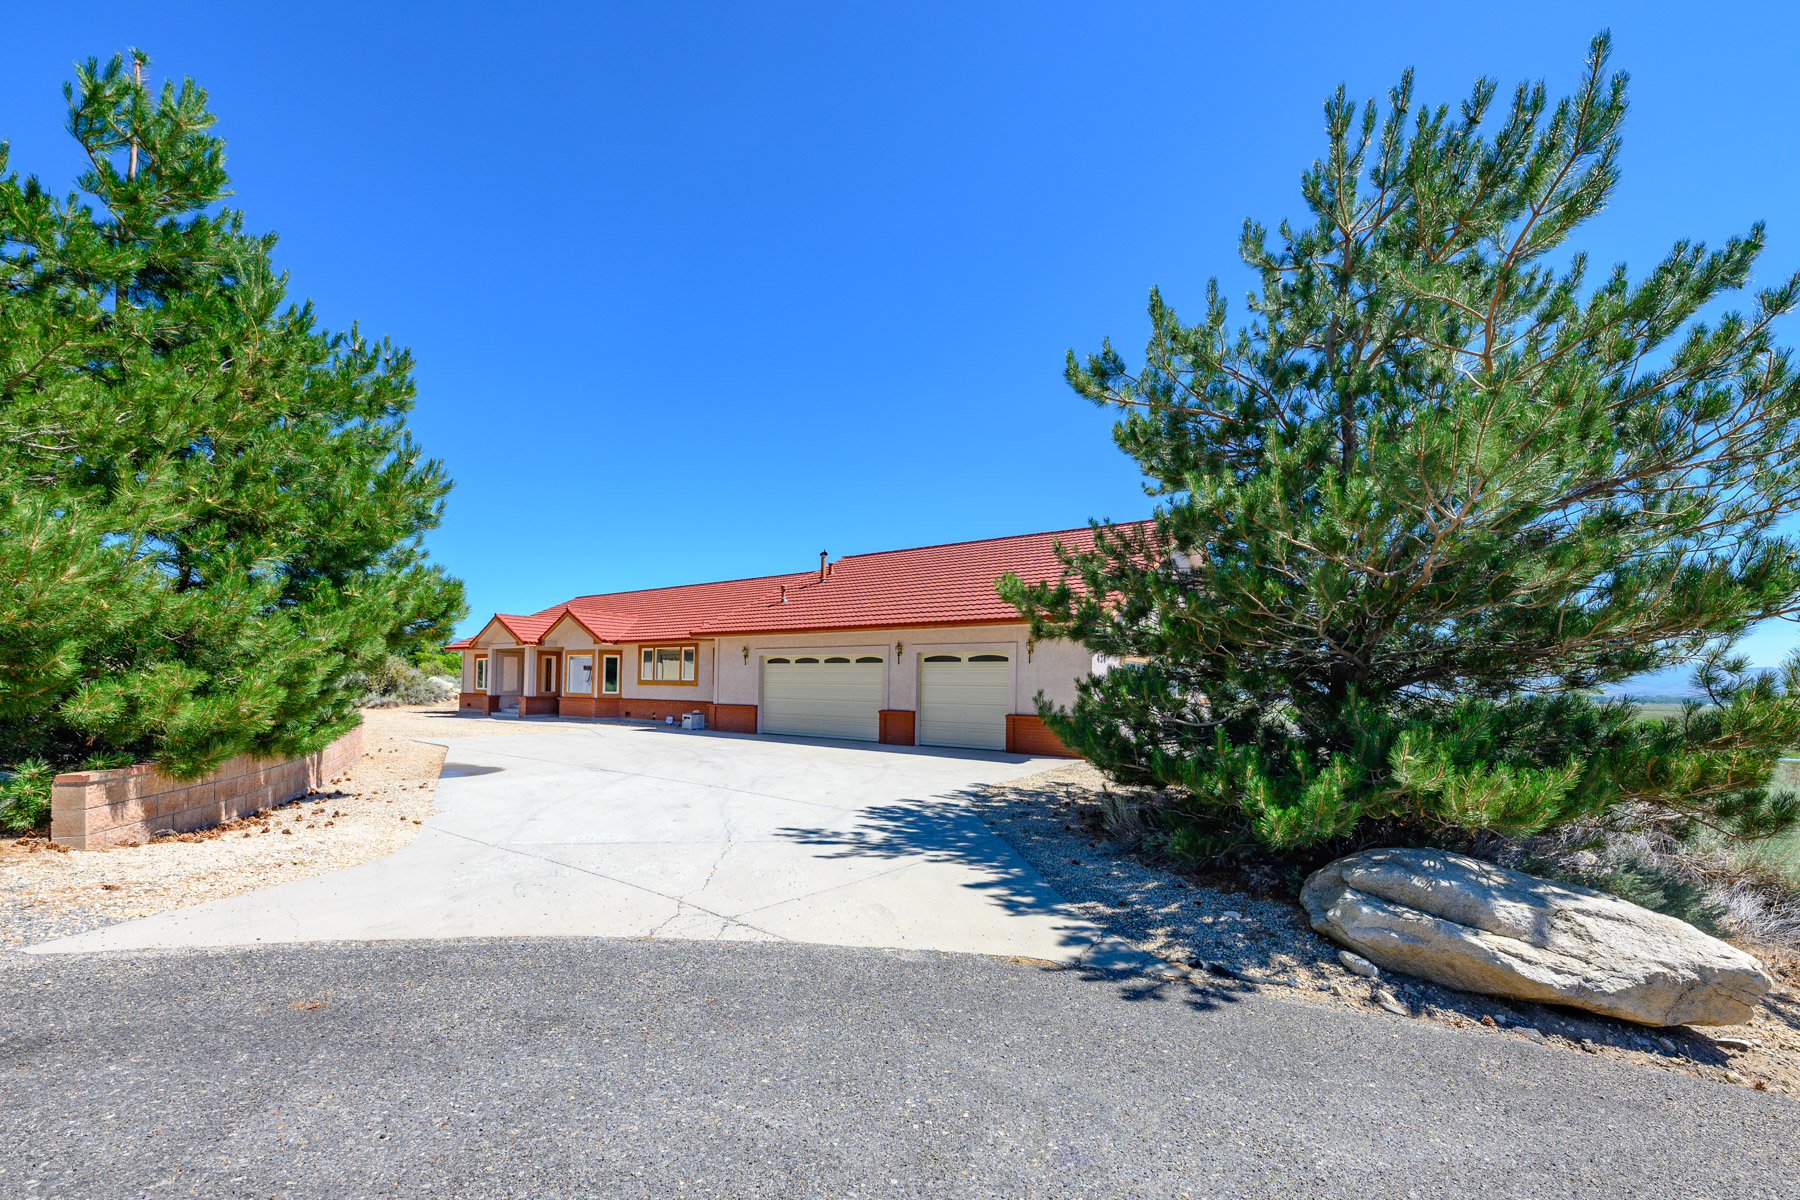 Additional photo for property listing at 424 Claire Court, Gardnerville, NV 89460 424 Claire Court Gardnerville, Nevada 89460 United States